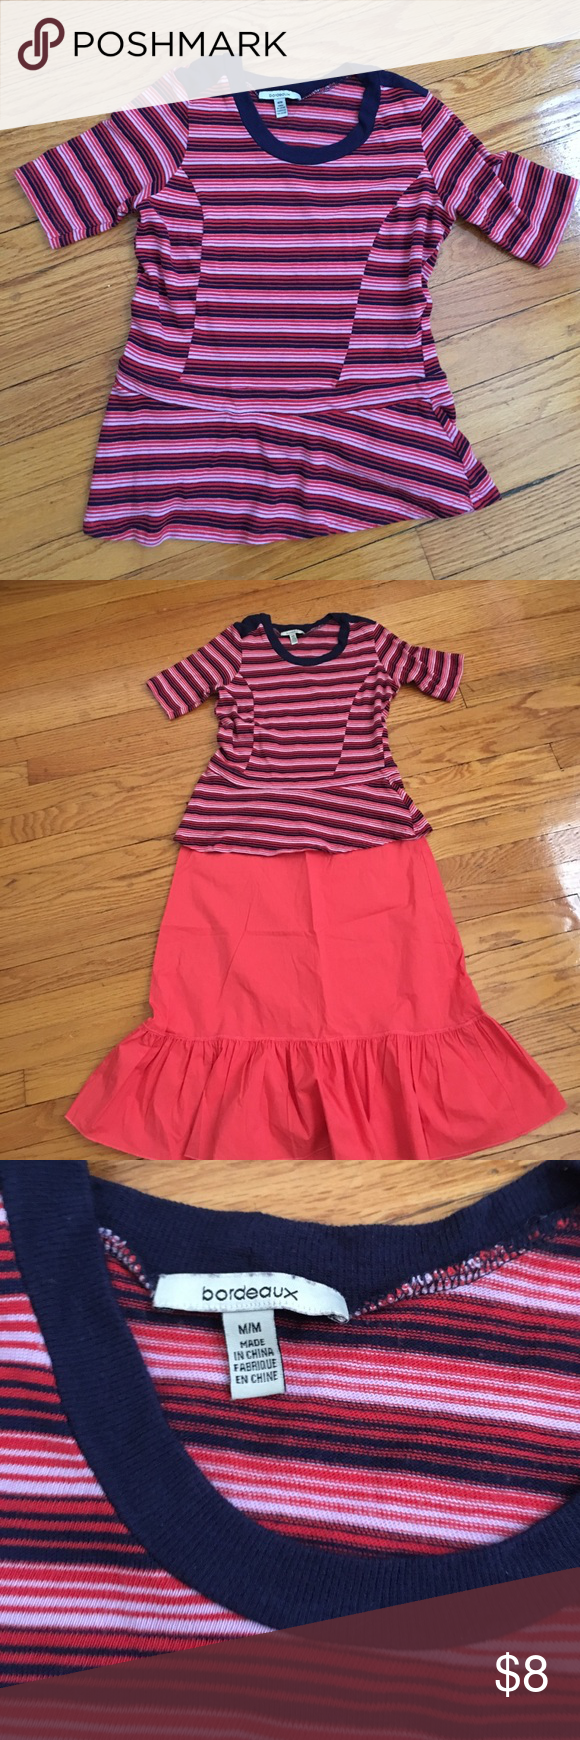 Anthropologie Bordeaux Peplum top Fun stripes. Reposhing this as it I thought it would be slightly longer. Anthropologie Tops